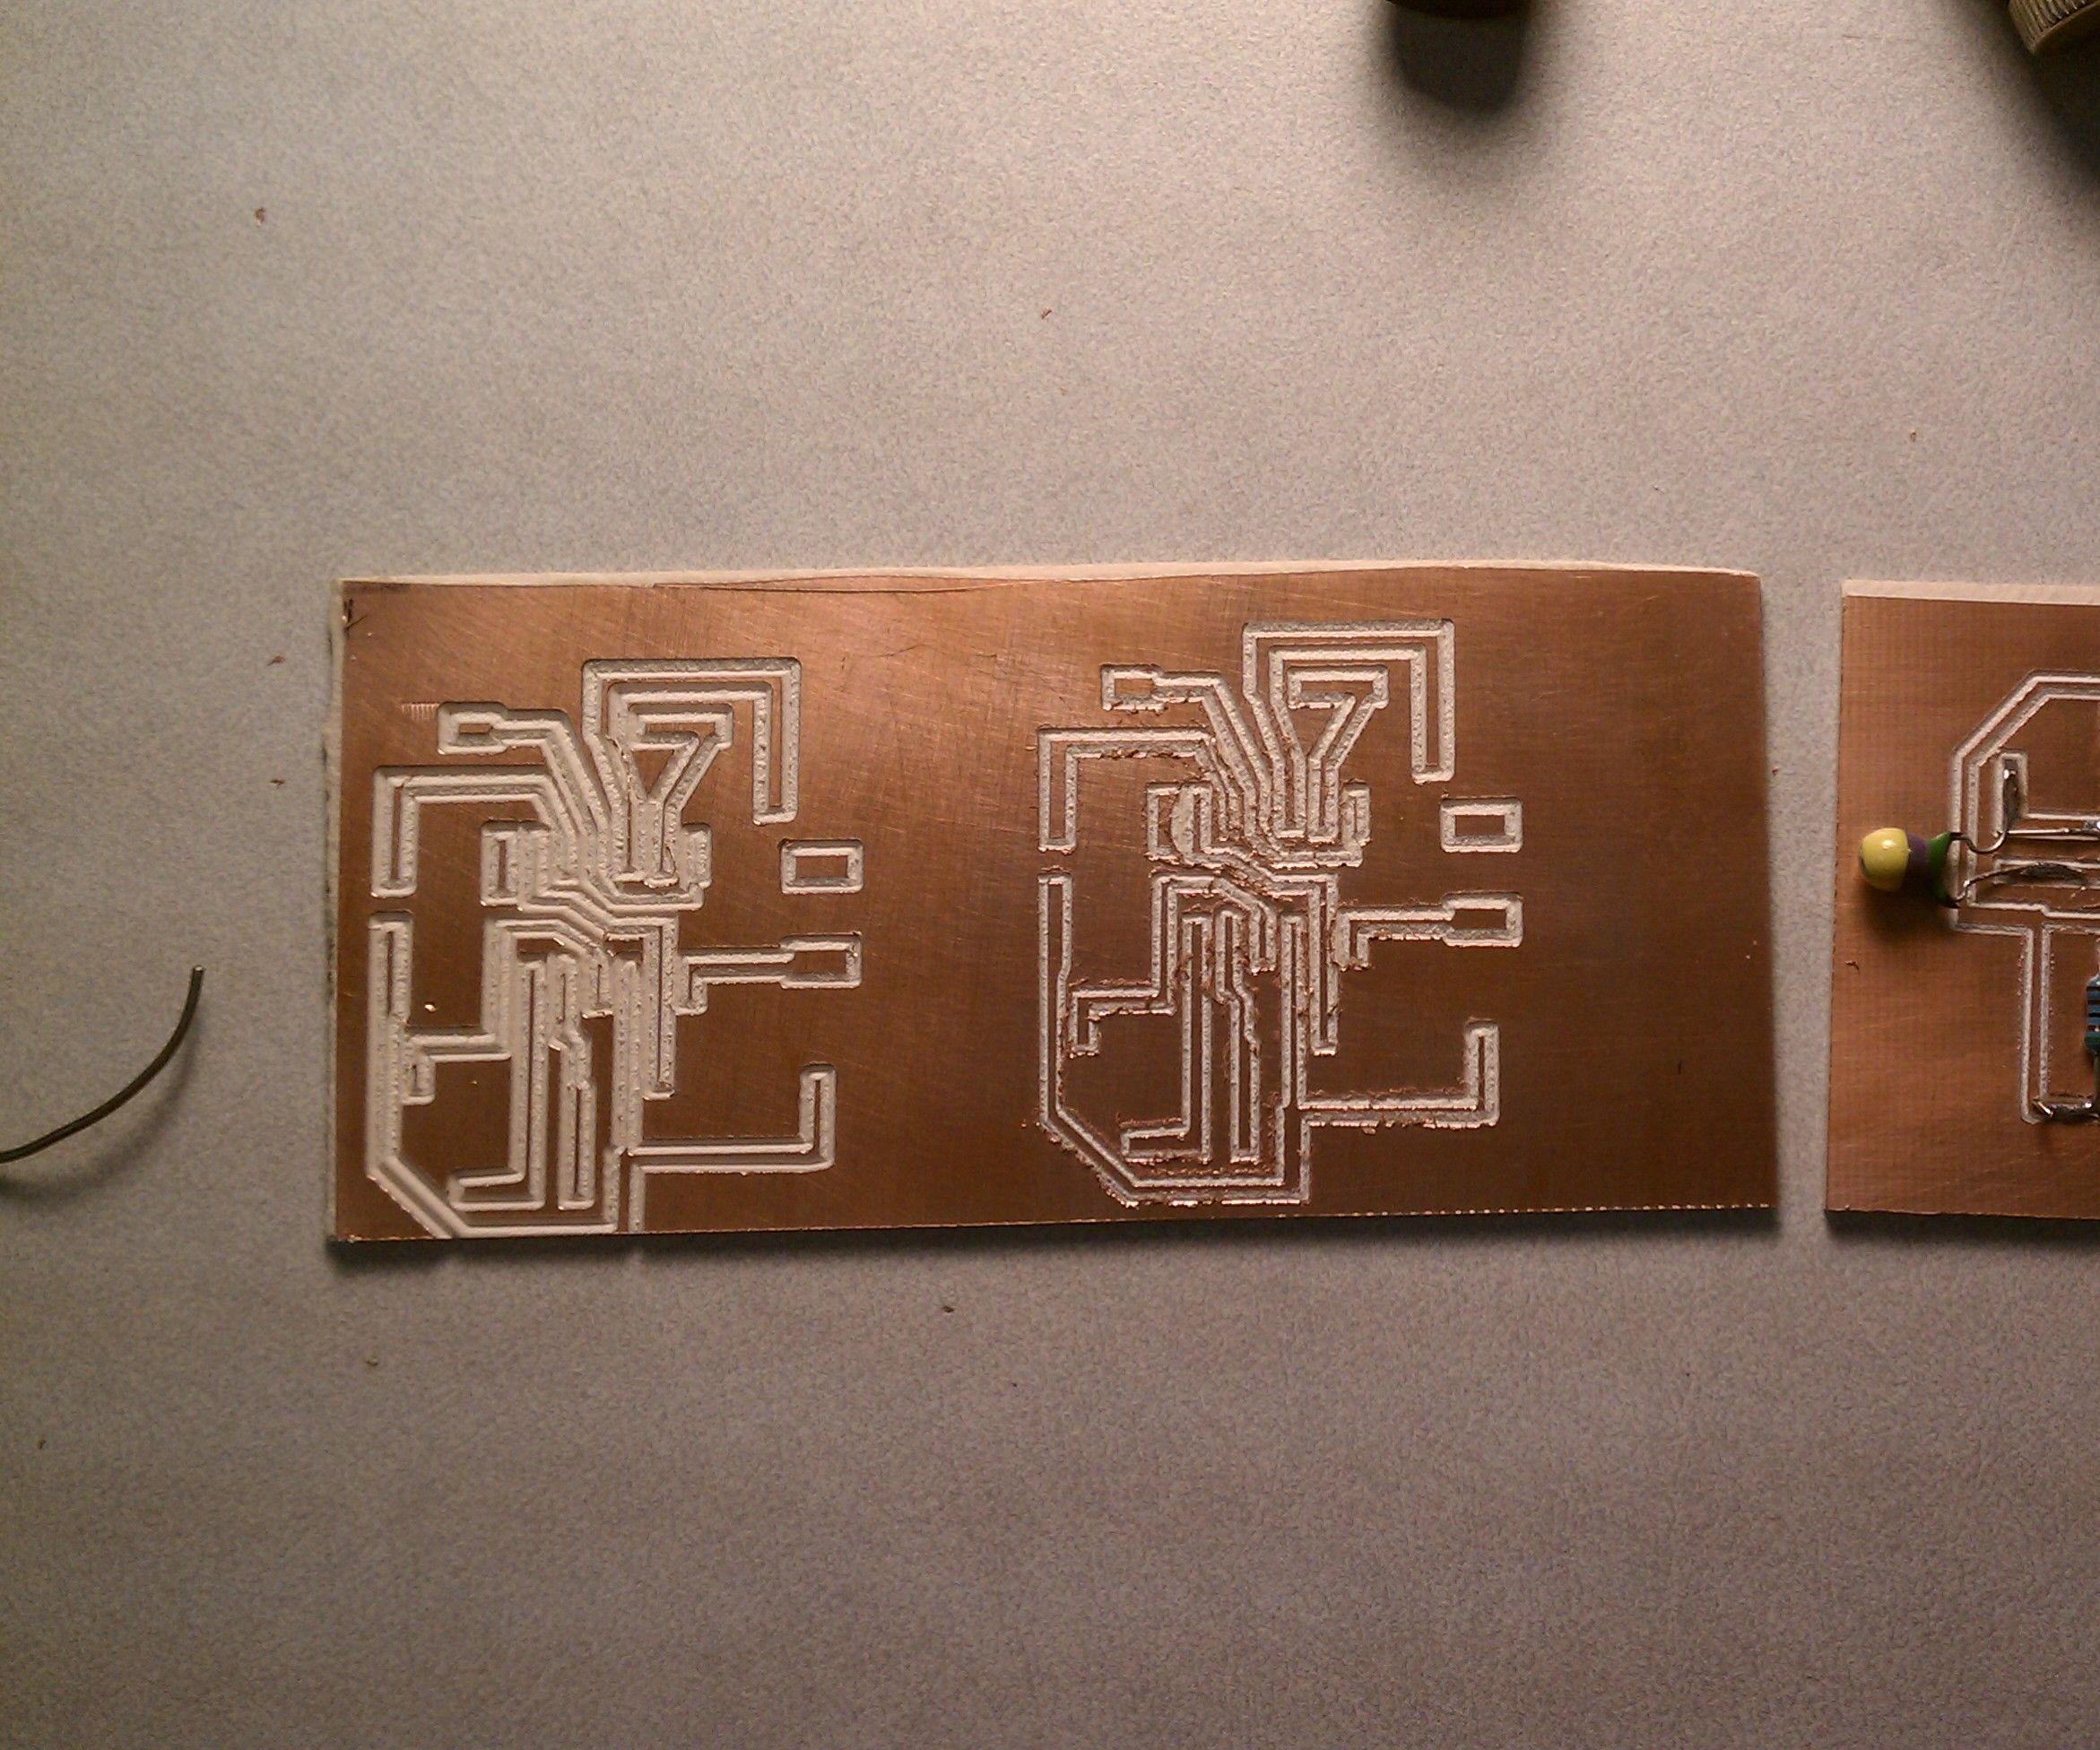 milling small pcb's (using a big machine to do little things)